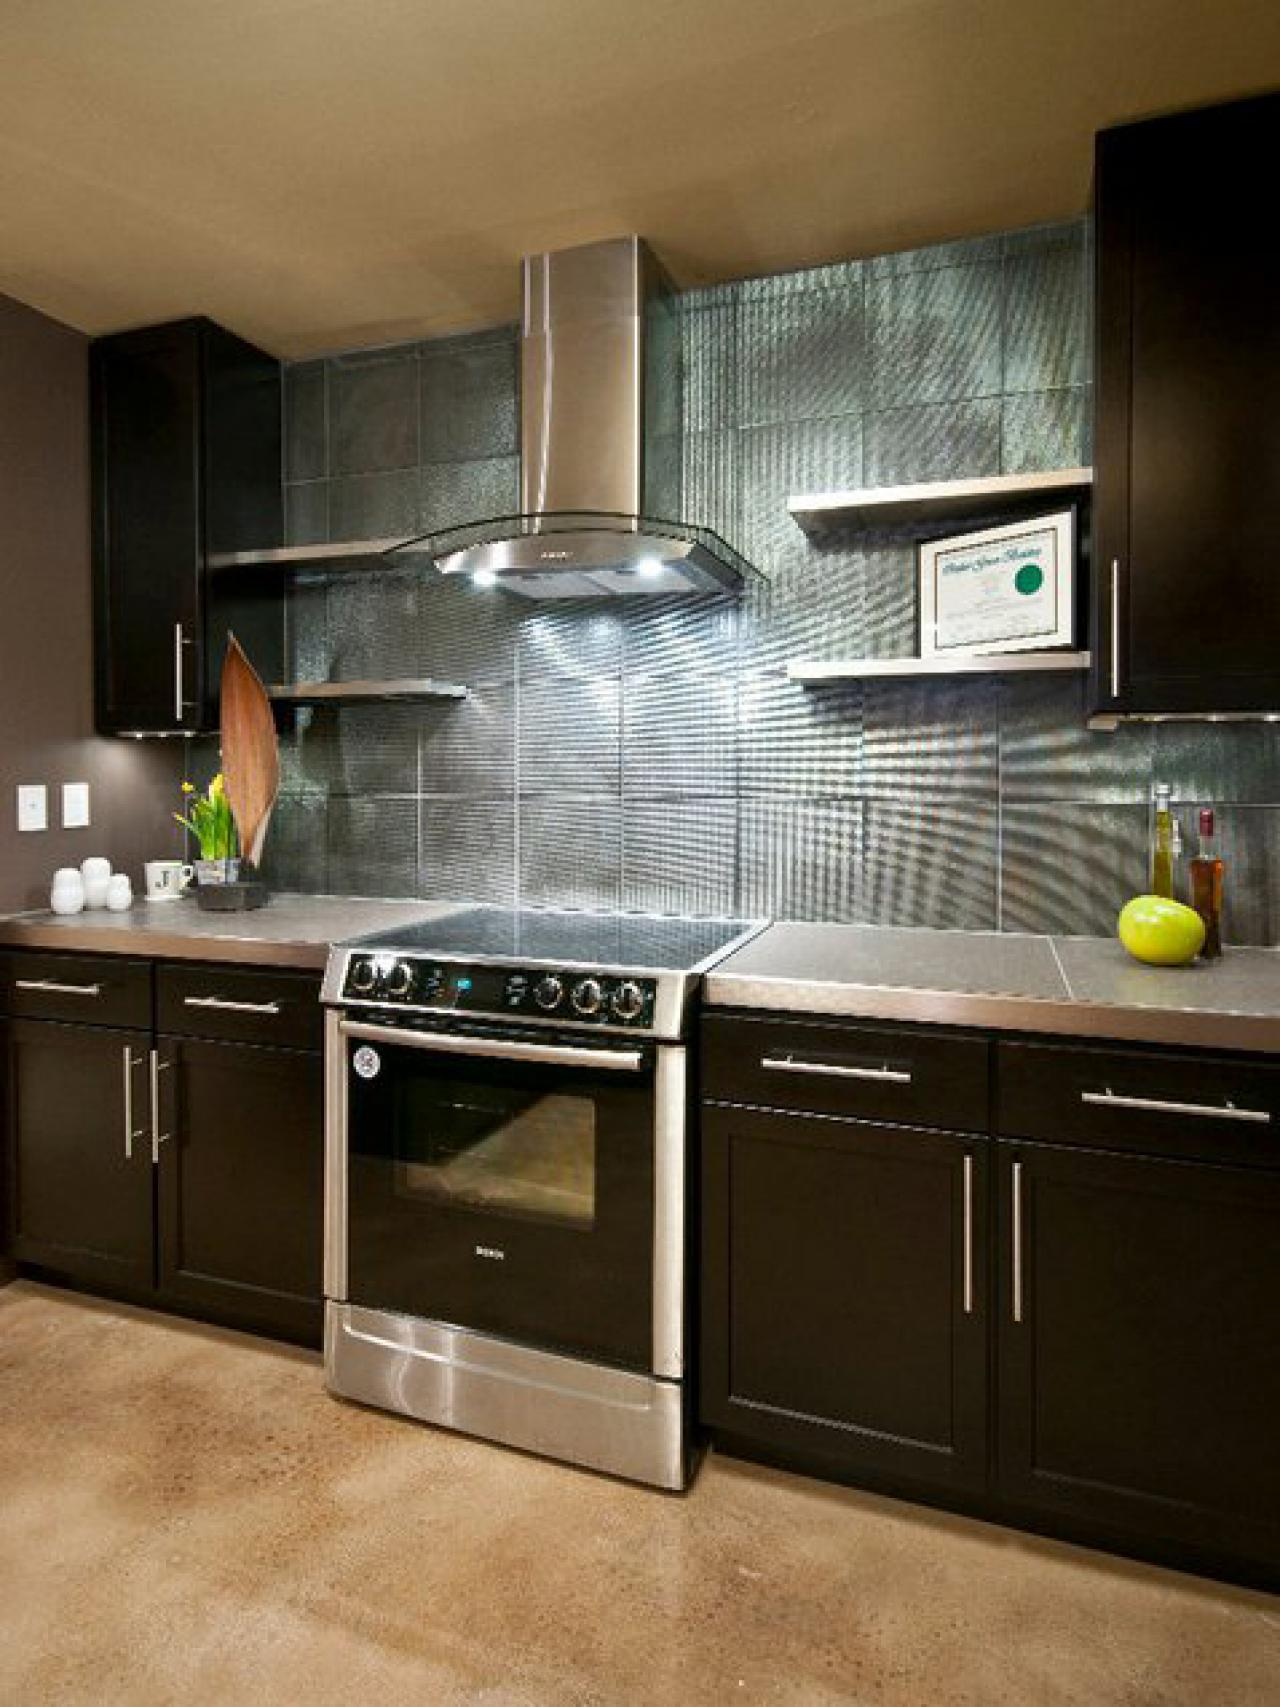 Blacksplash Ideas do-it-yourself diy kitchen backsplash ideas + hgtv pictures | hgtv